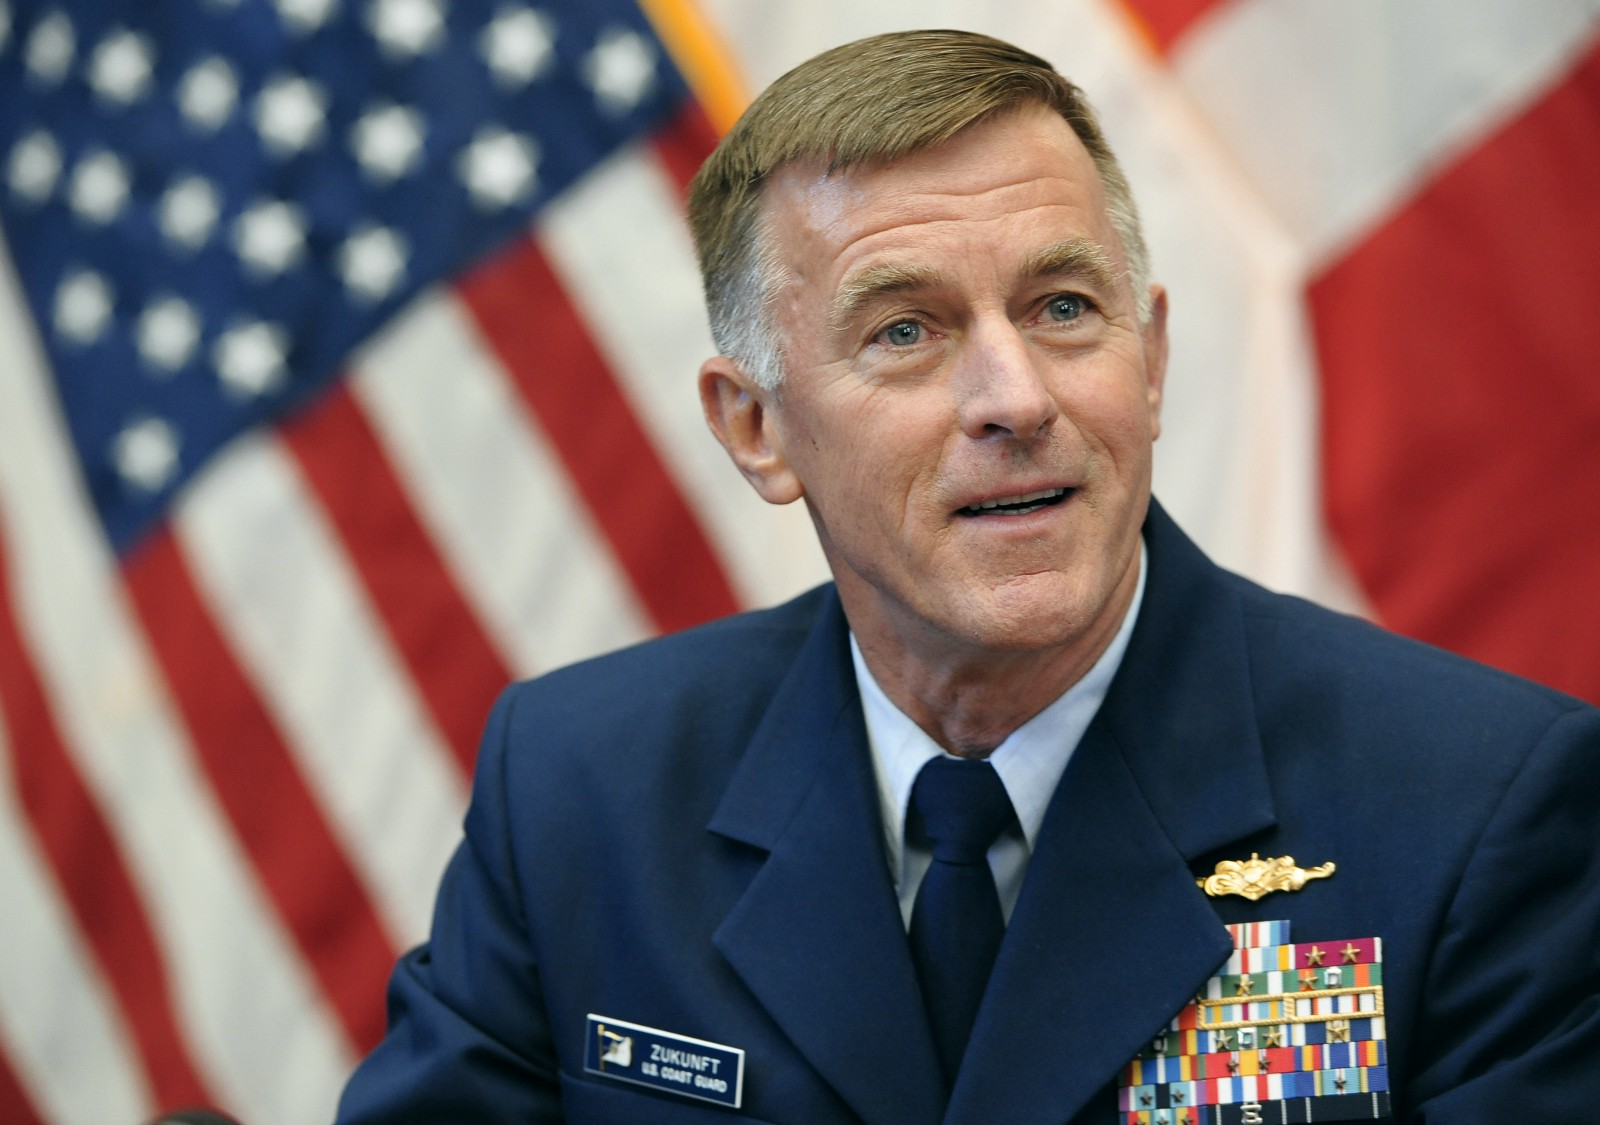 Coast Guard commandant signals he will resist Trump's military transgender ban